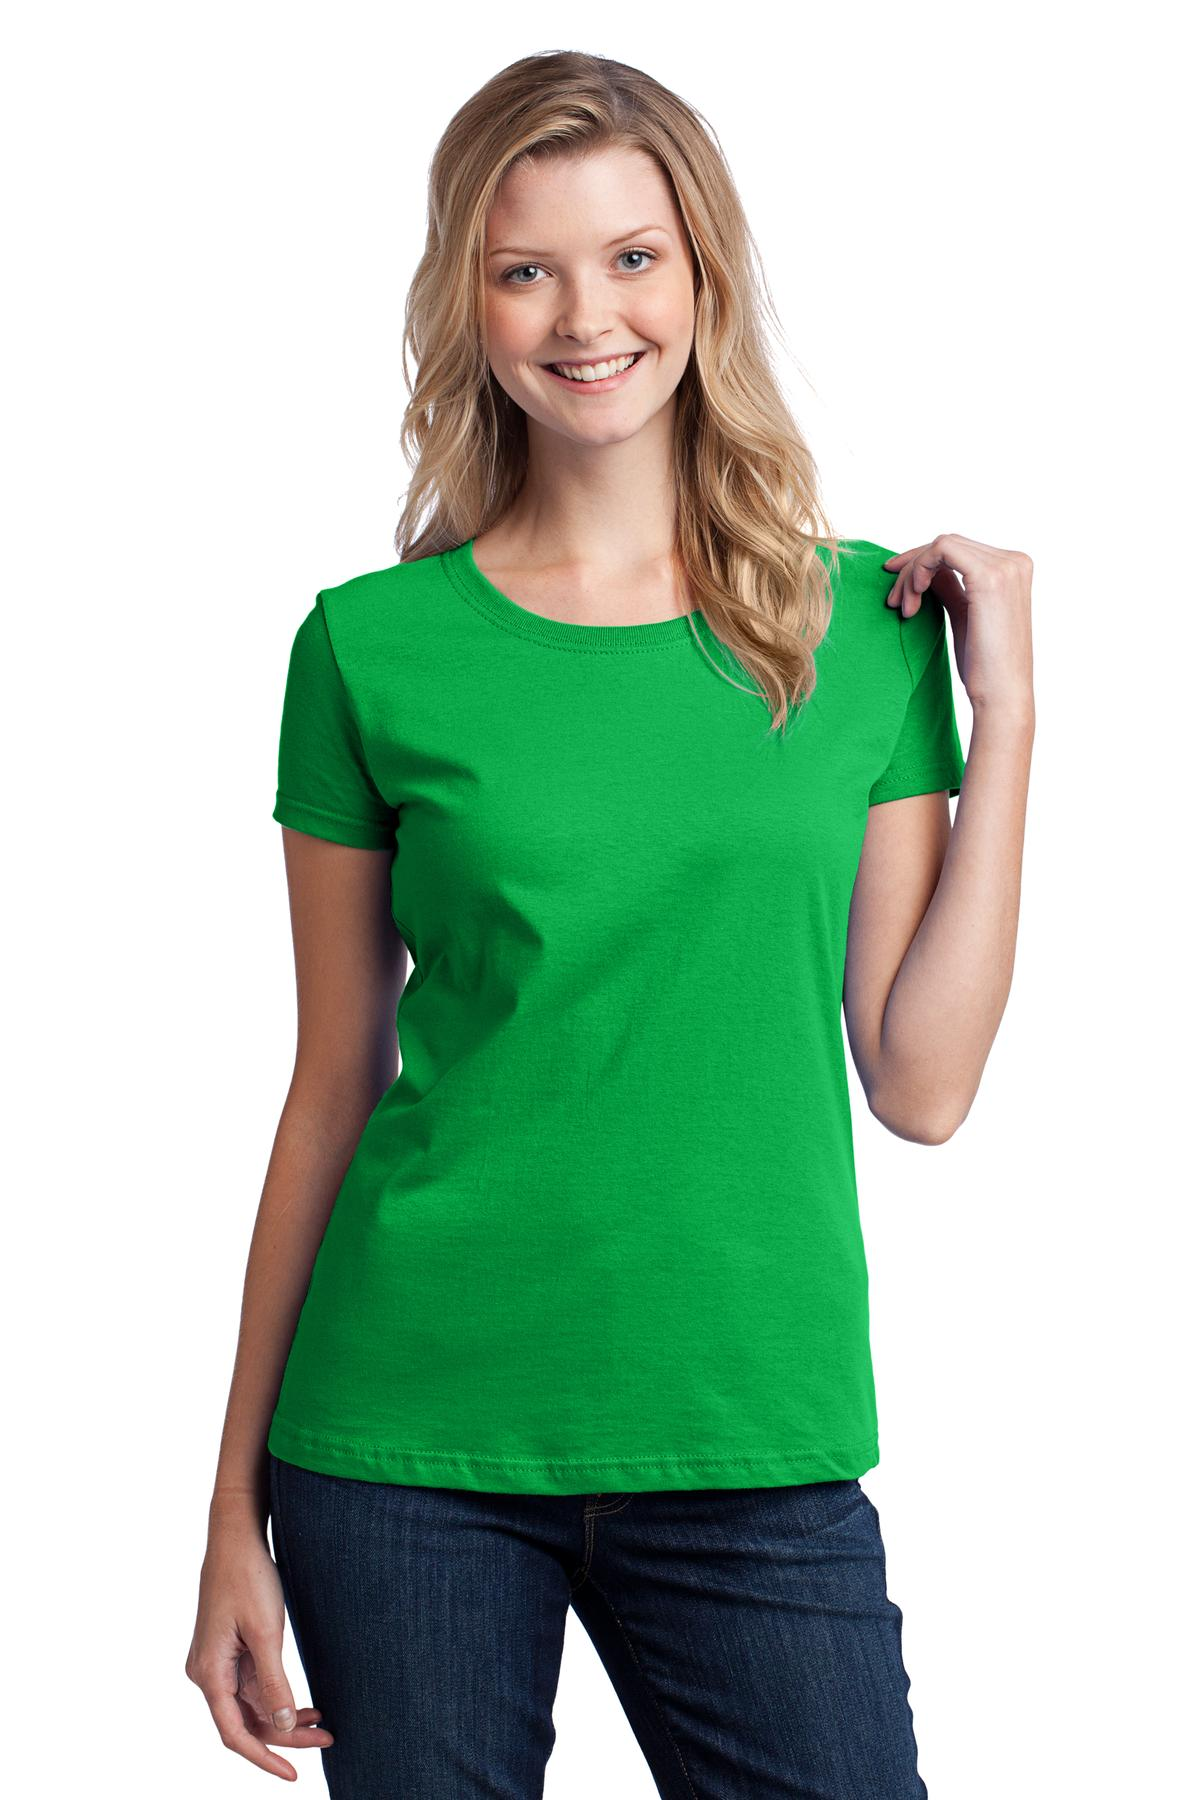 DISCONTINUED Fruit of the Loom Ladies HD Cotton 100% Cotton T-Shirt. L3930